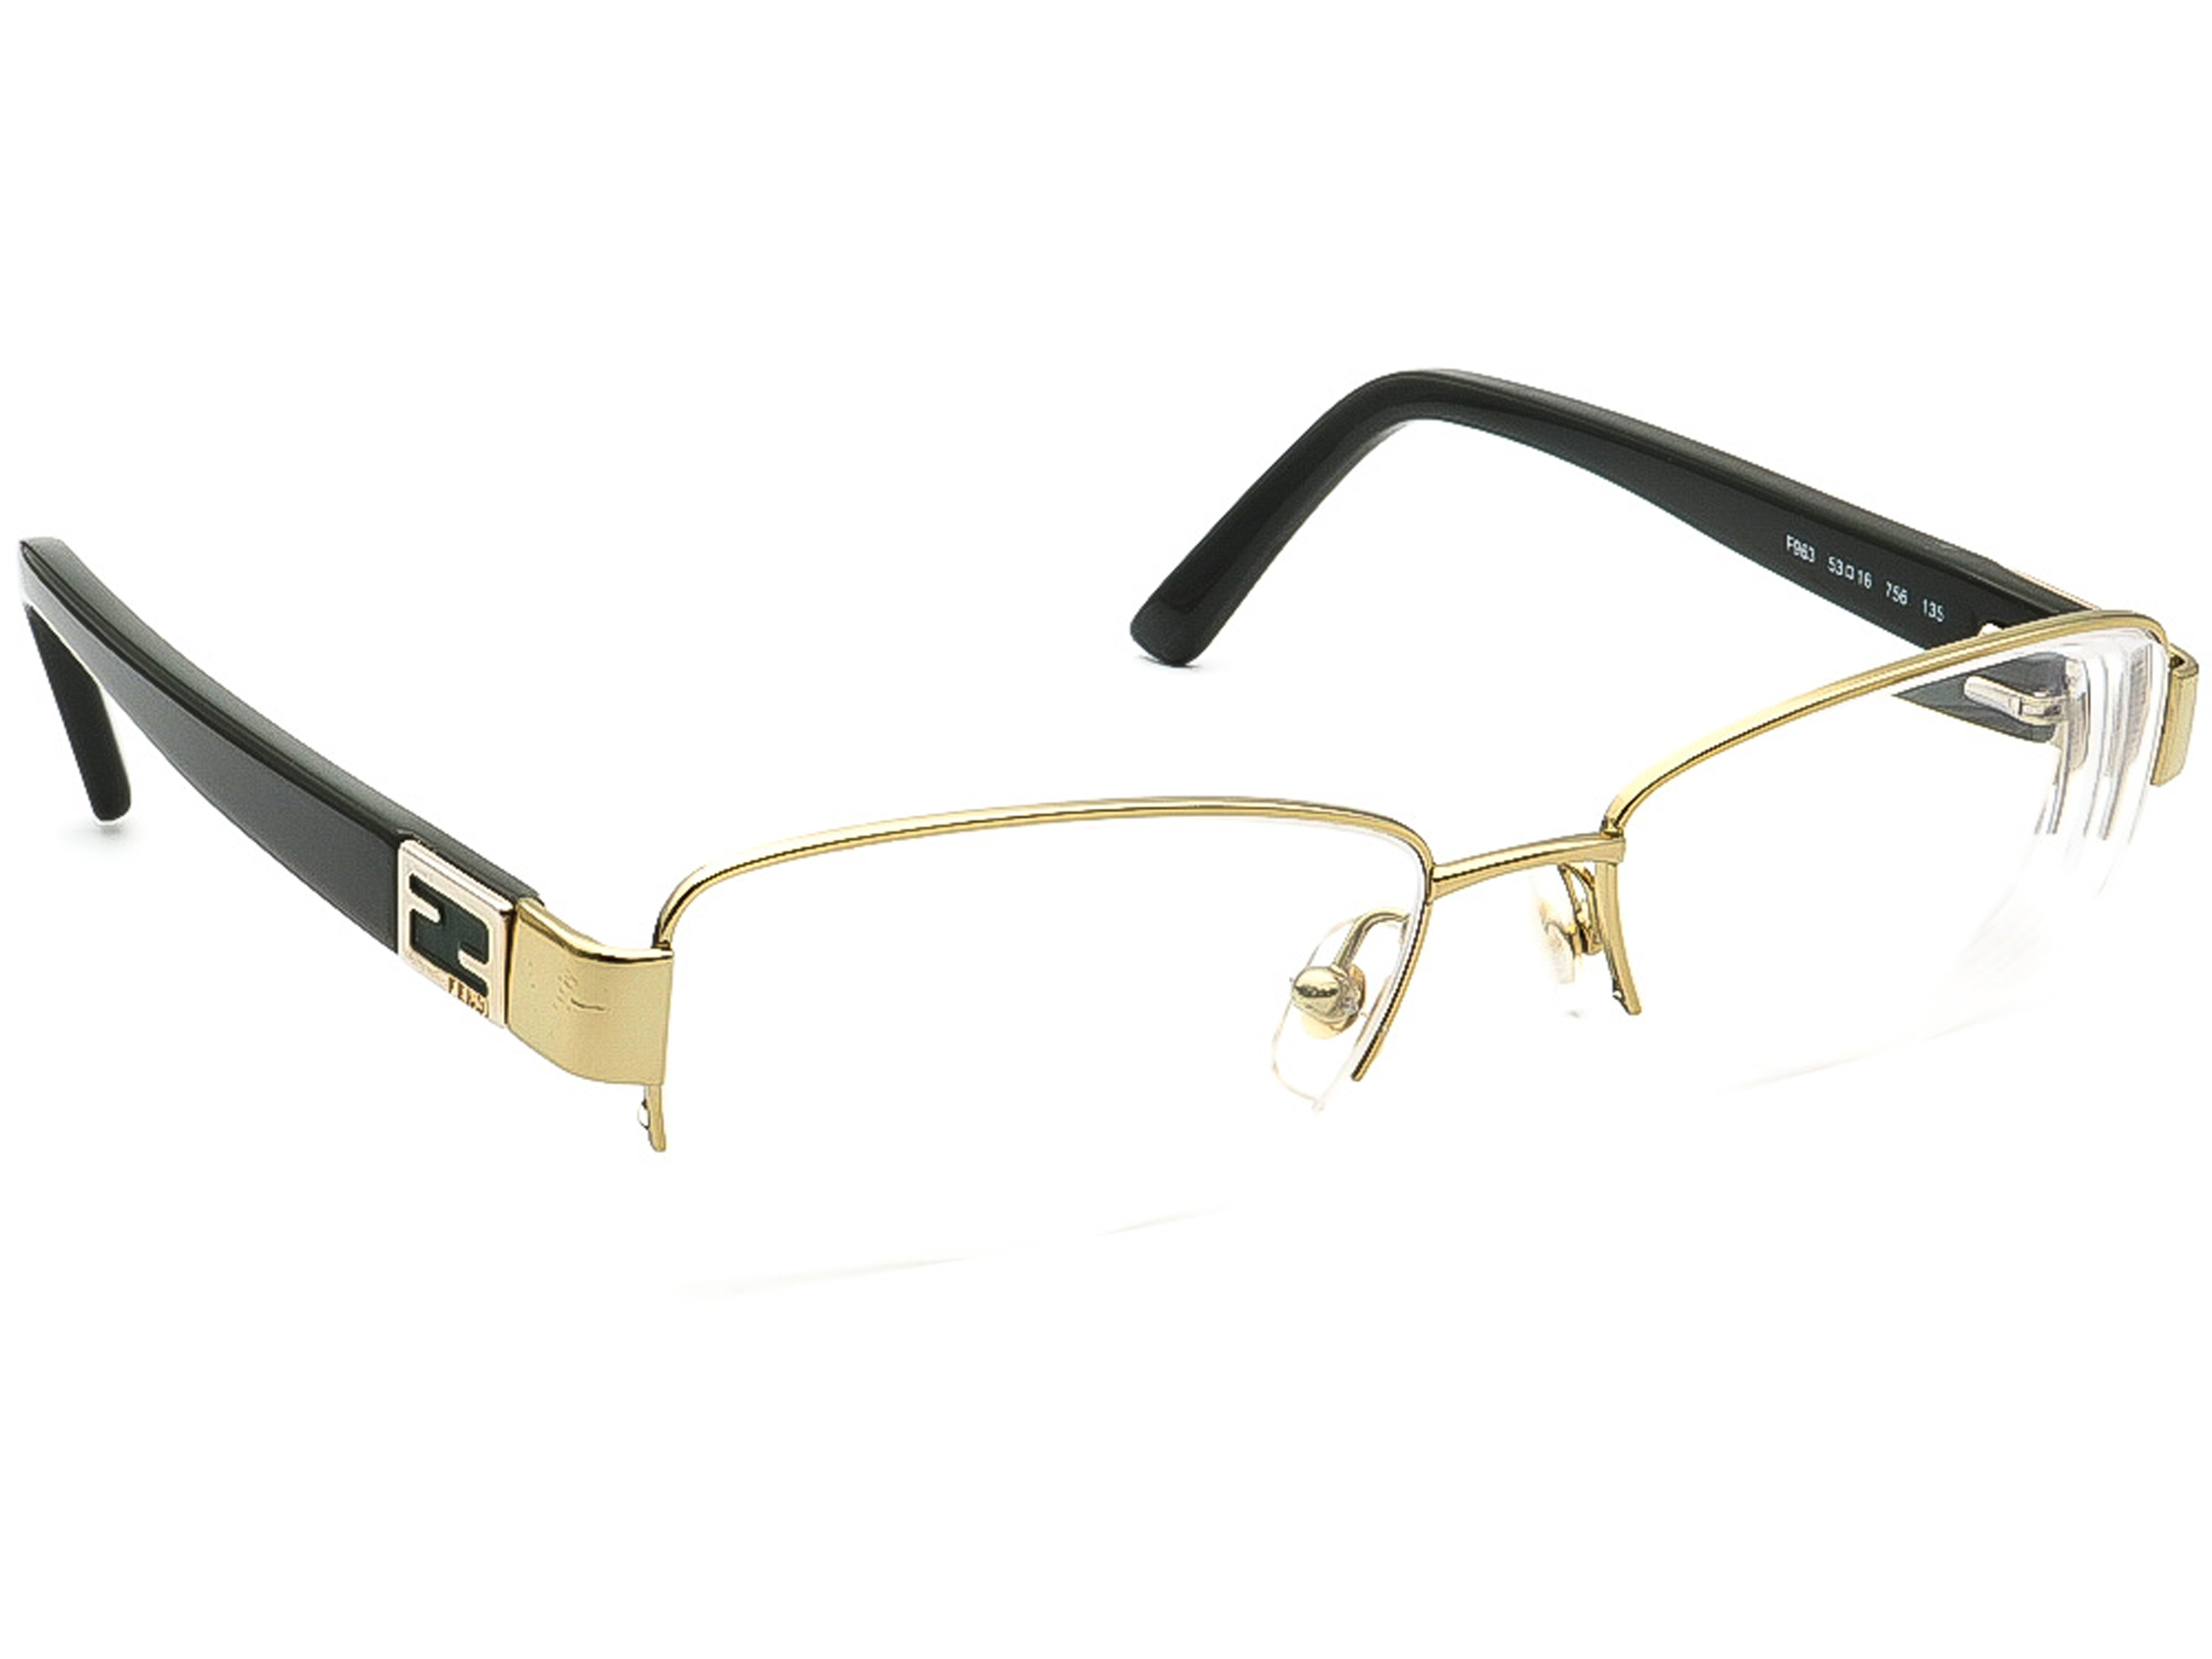 Fendi F963 756 Eyeglasses